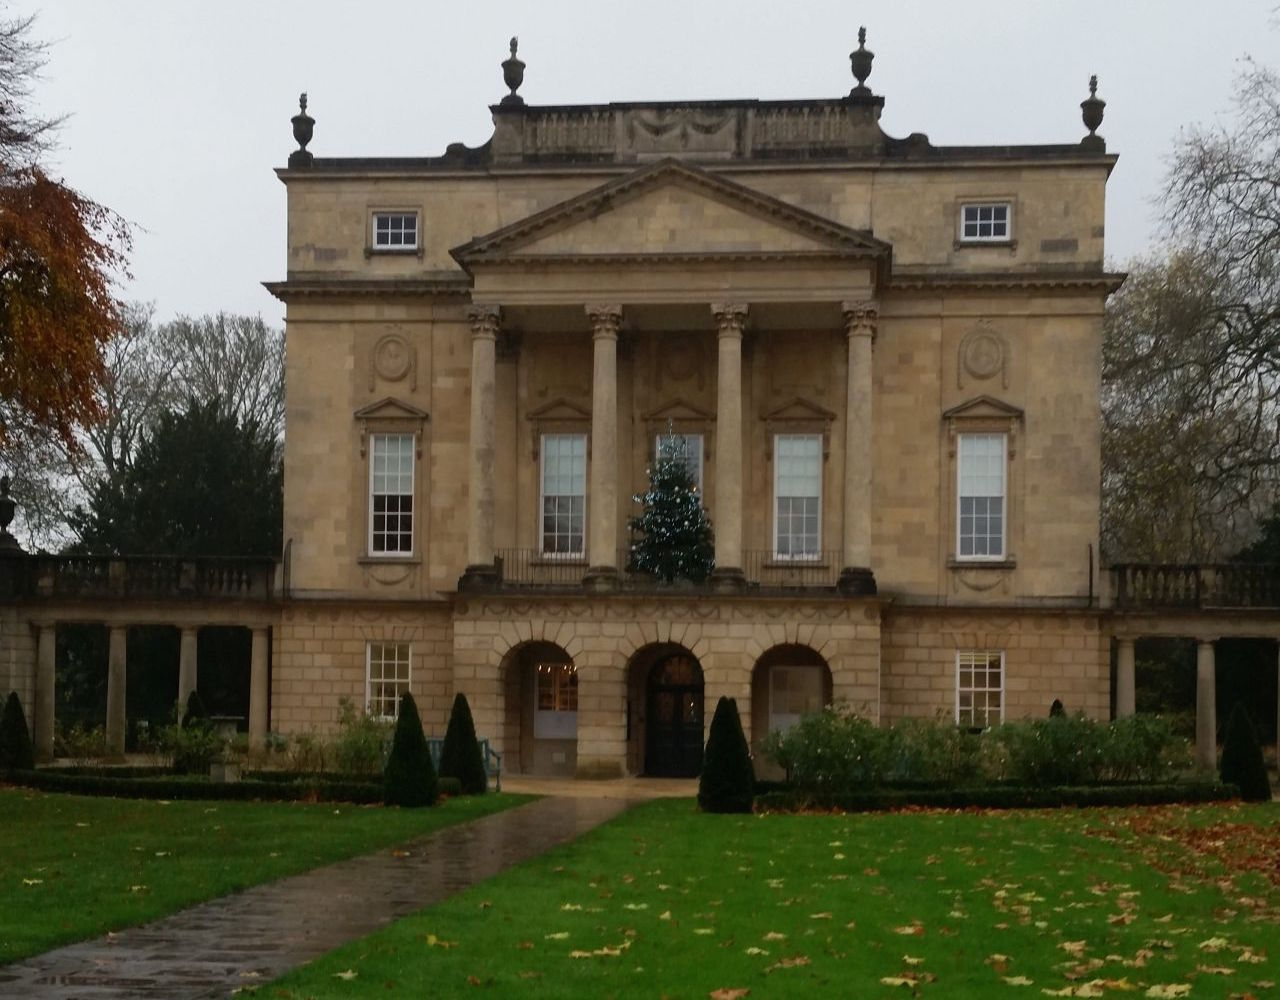 Exterior of the Holburne Museum